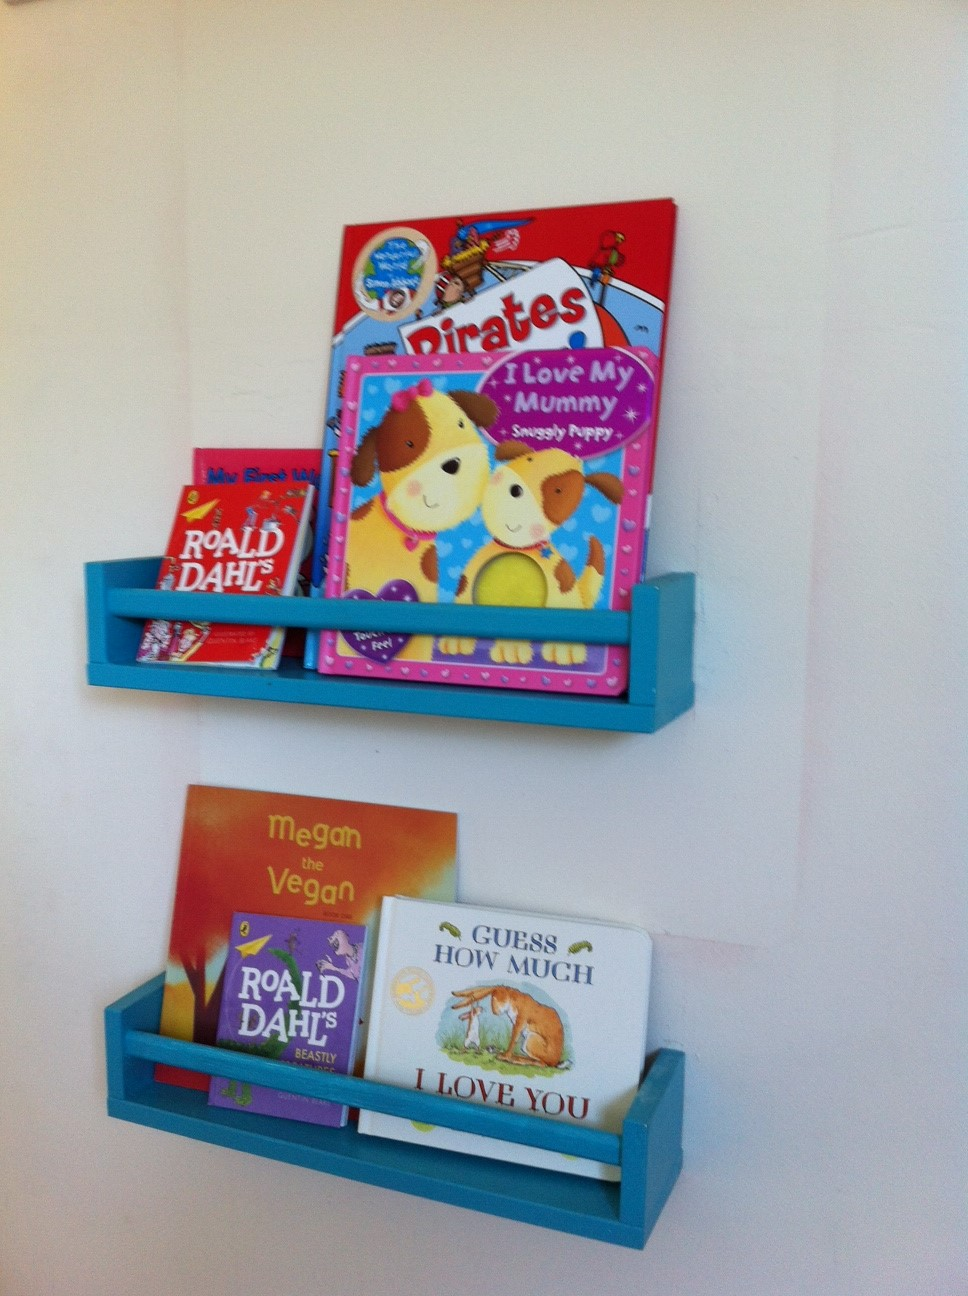 Ikea Spice Rack turned into a childrens book shelf